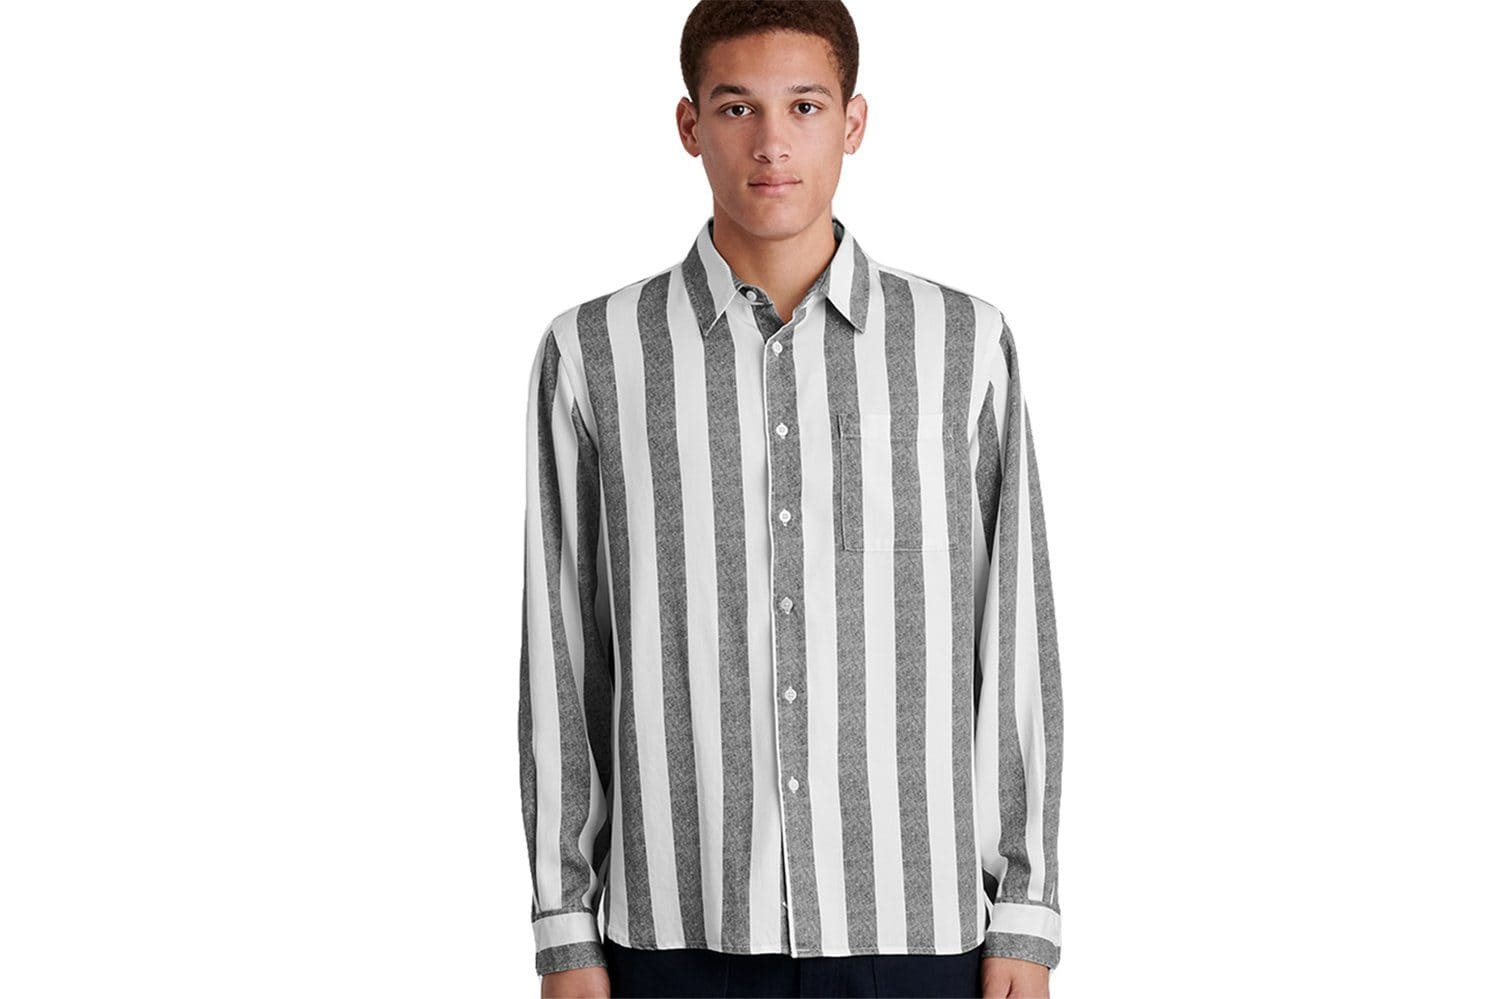 PERRY JUMBO STRIPE L/S SHIRT - M41920PY01 MENS SOFTGOODS SATURDAYS NYC